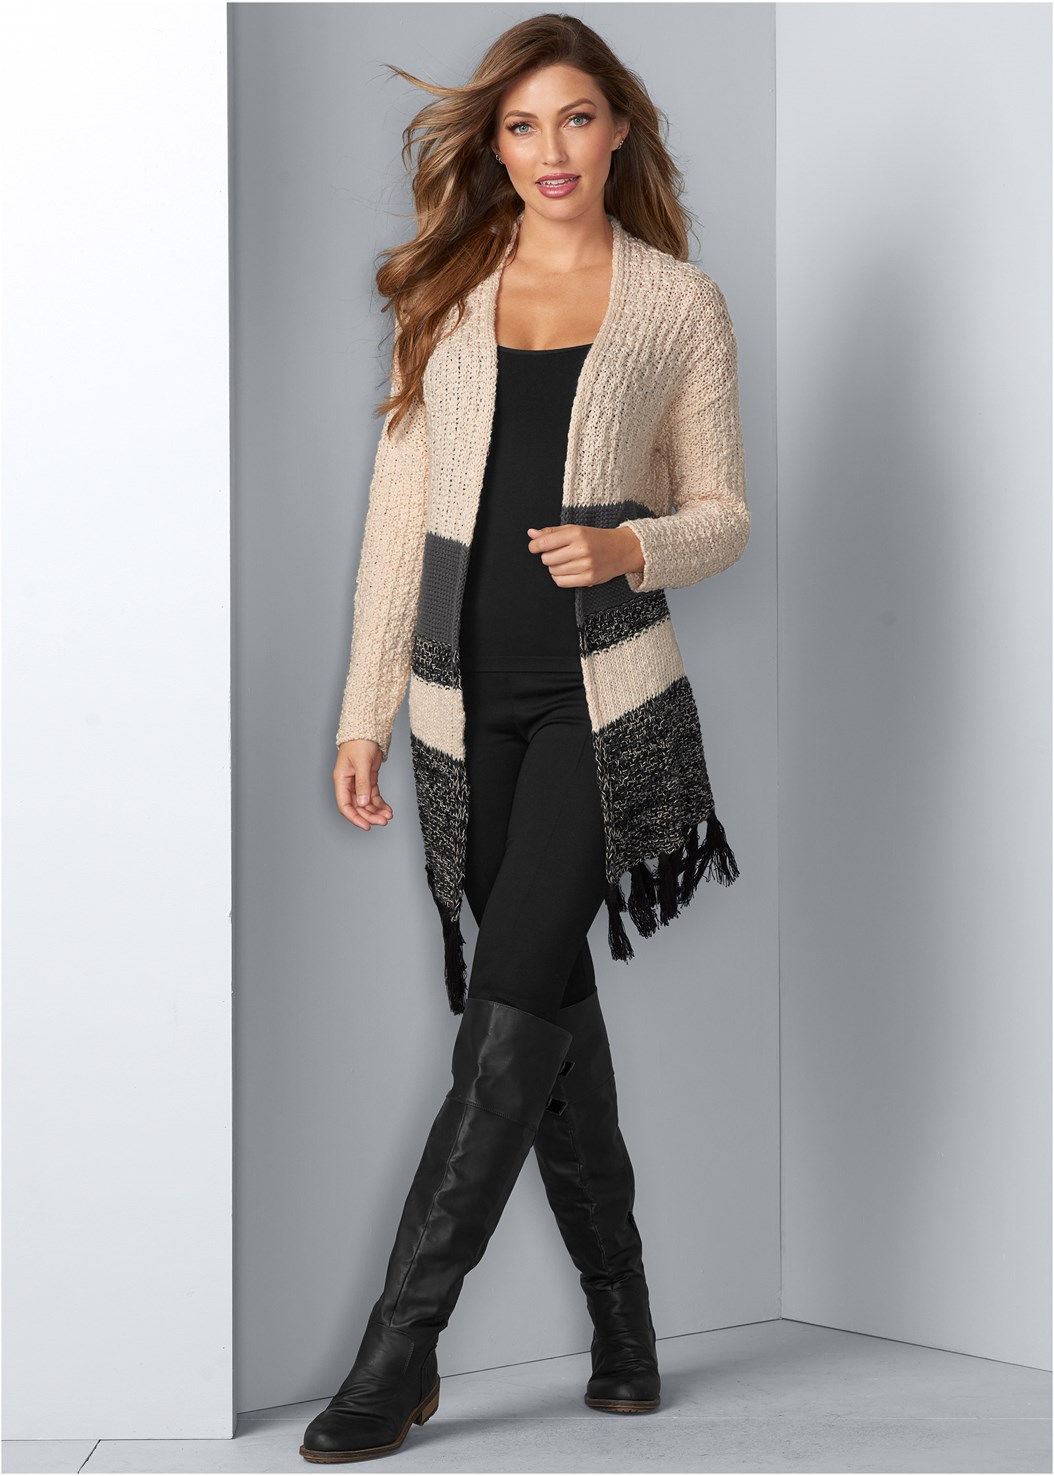 Tassel Detail Duster,Basic Cami Two Pack,Buckle Knee High Boots,Lurex Detail Scarf